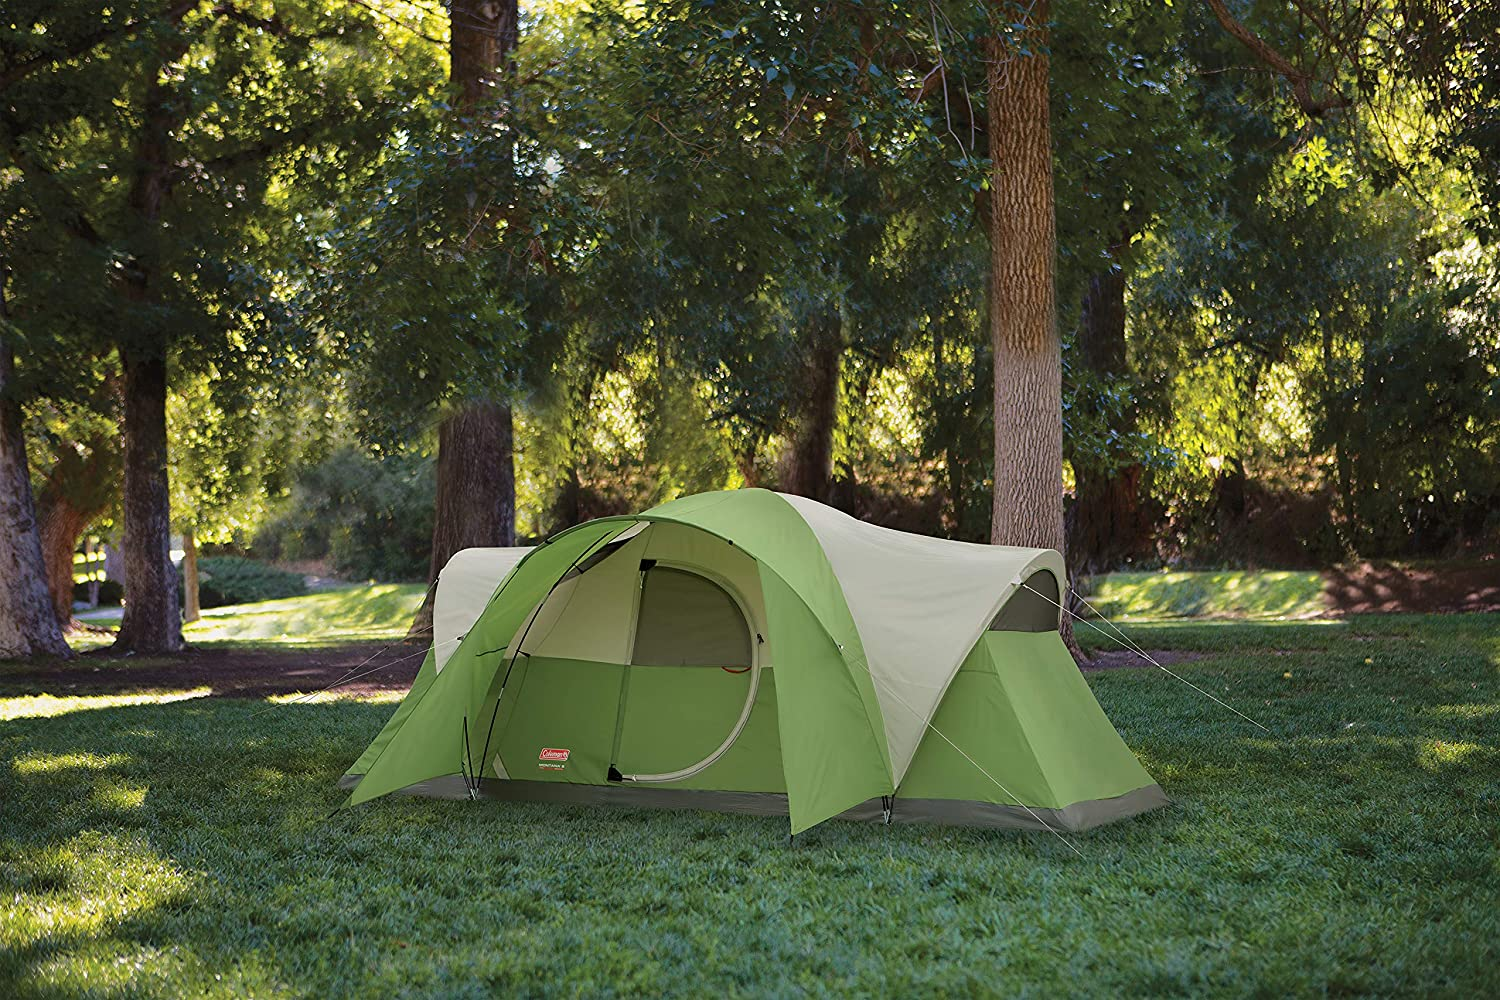 Camping Gear, Supplies, & More: The Best Daily Deals